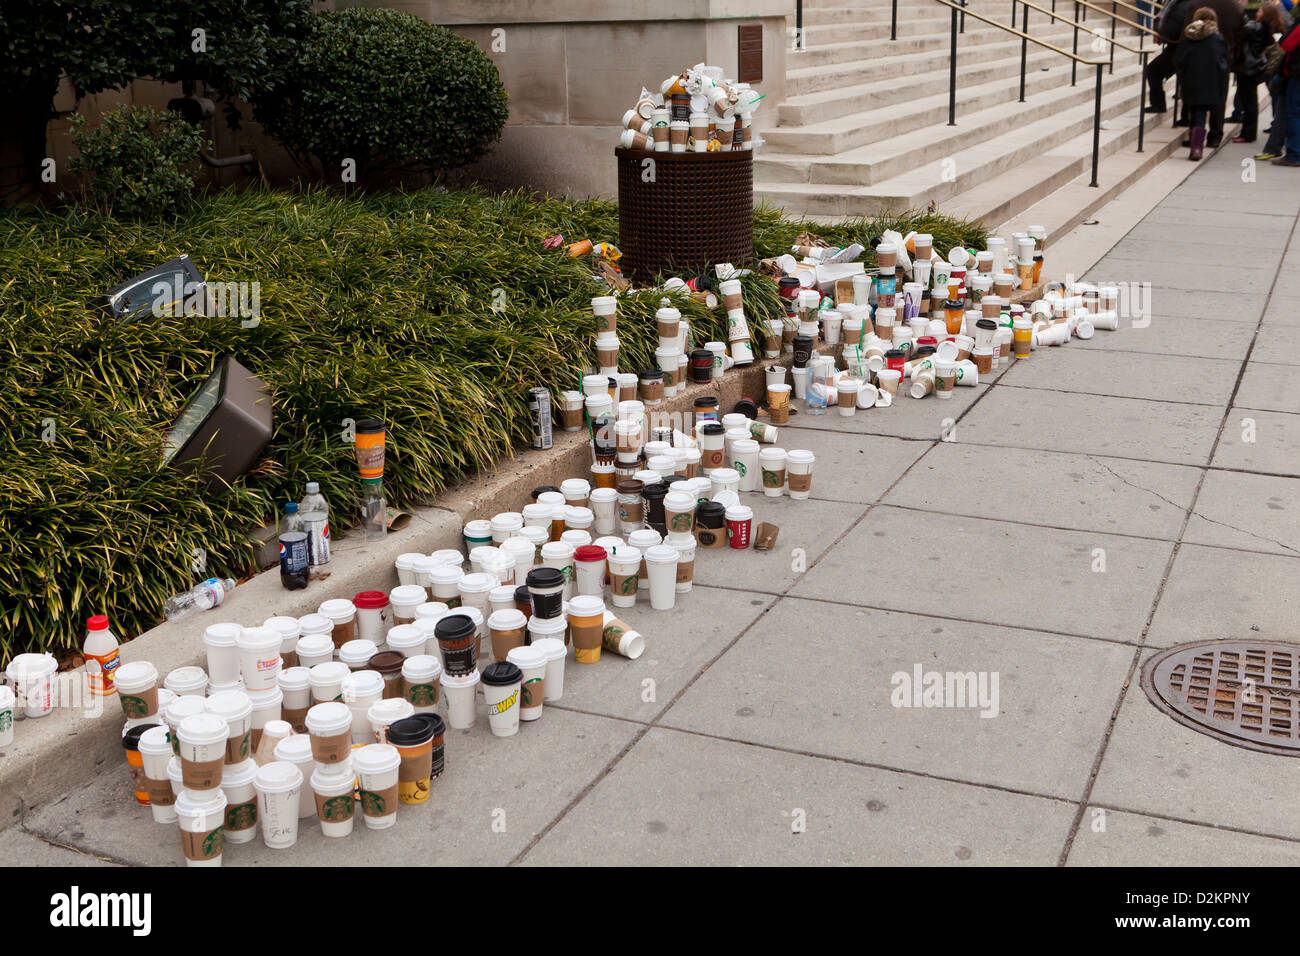 Discarded coffee cups overflowing from trash bin on public street - Stock Image